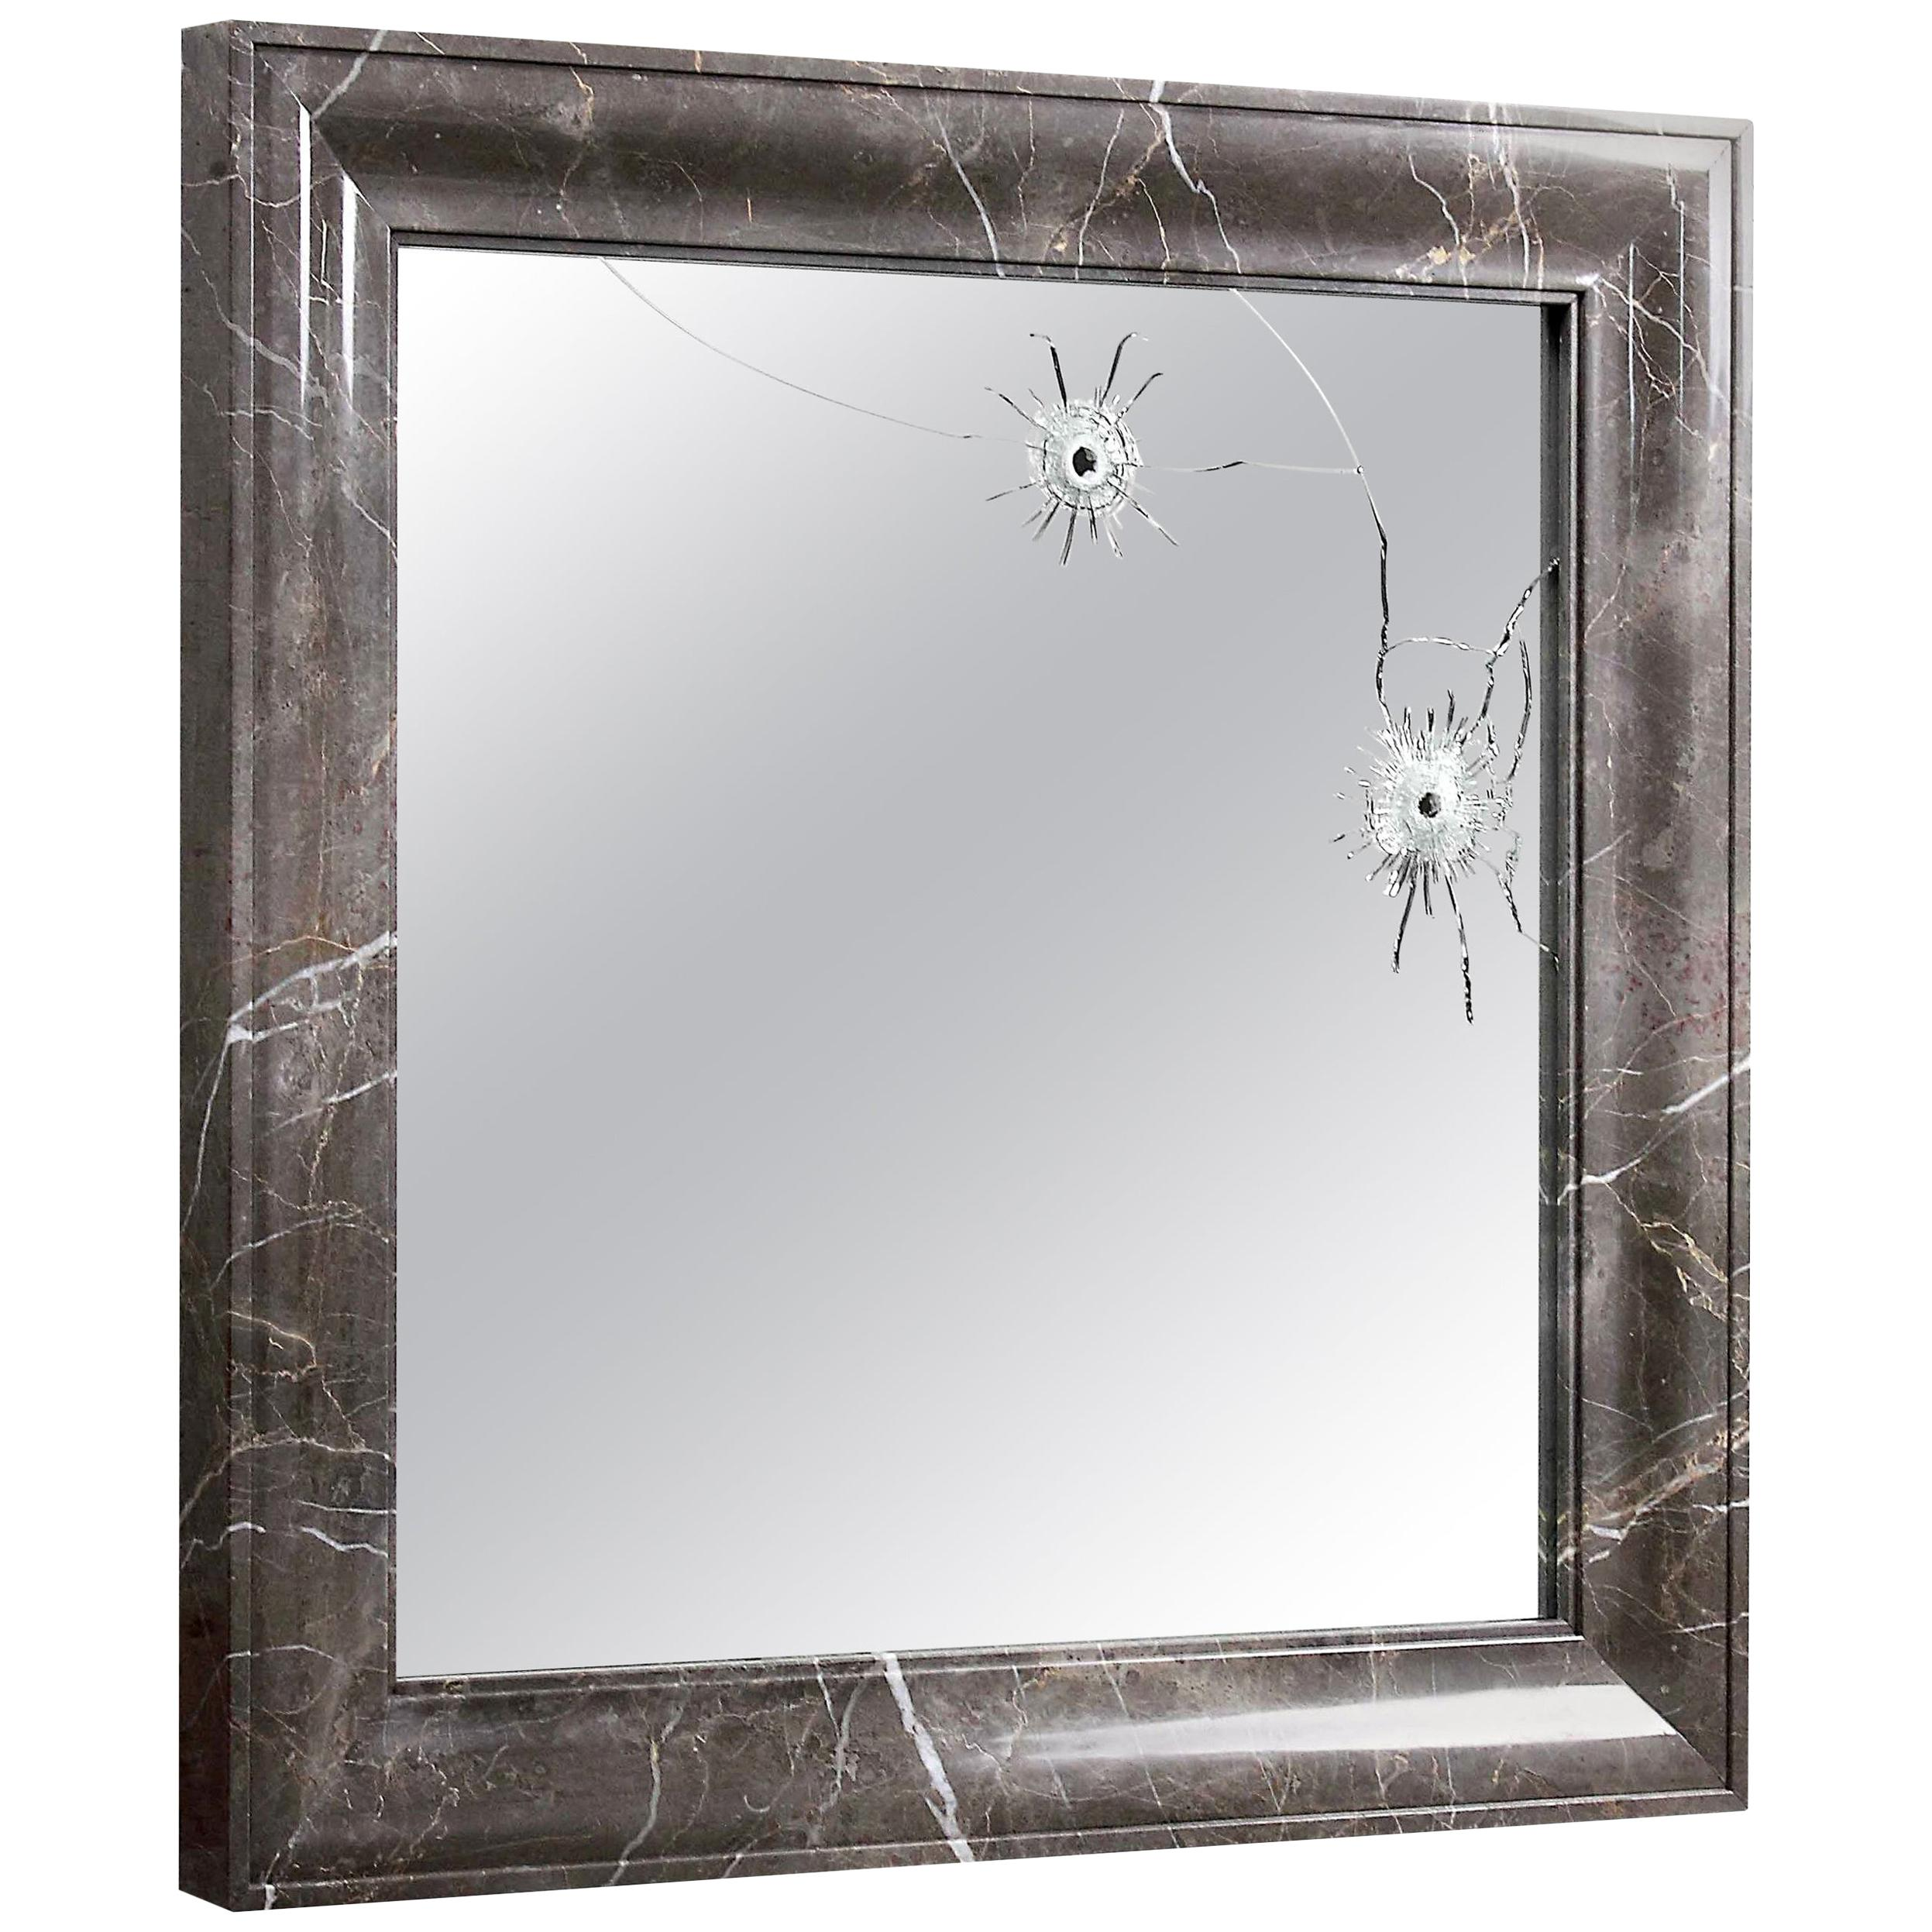 Wall Mirror Square Grey Marble Italian Limited Edition Contemporary Design